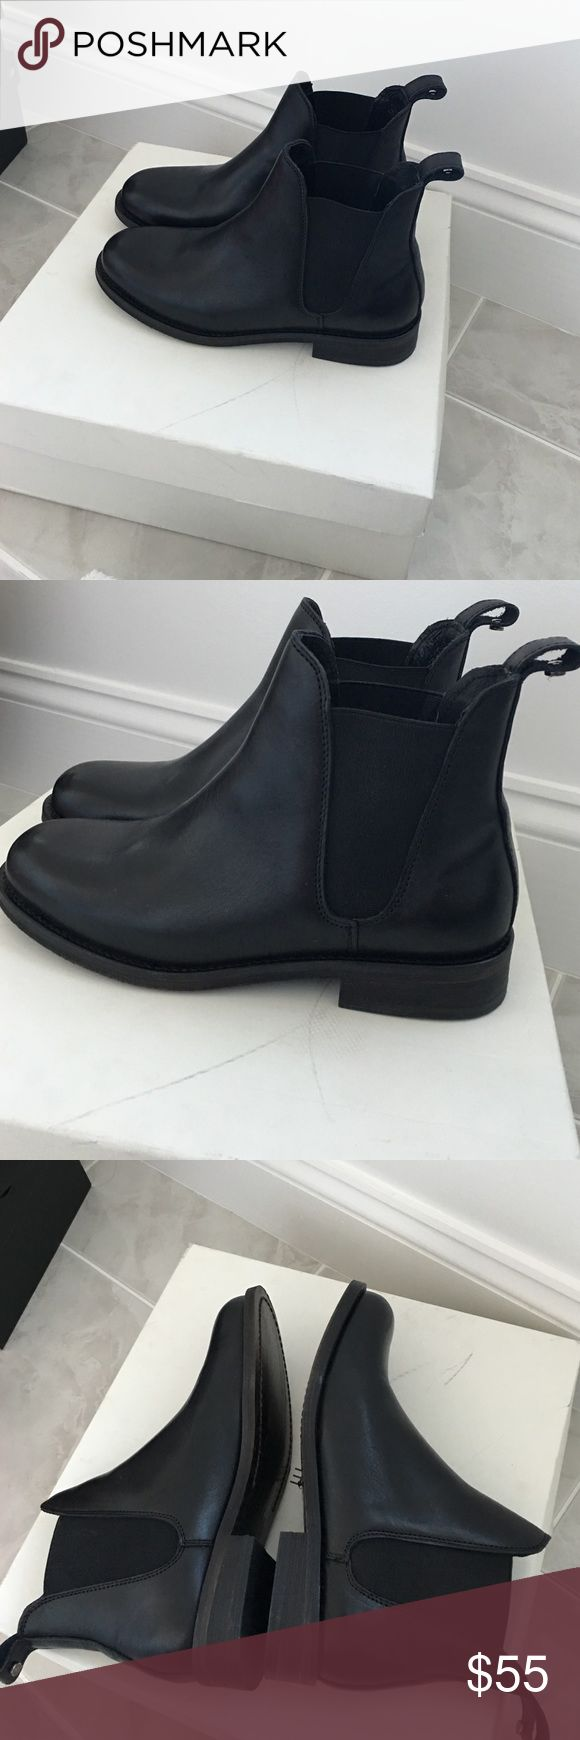 Nordstrom boots. Brand new Treasure and bond boots. Black. Size 6. Genuine leather. Smoke free. No trades Nordstrom Shoes Ankle Boots & Booties